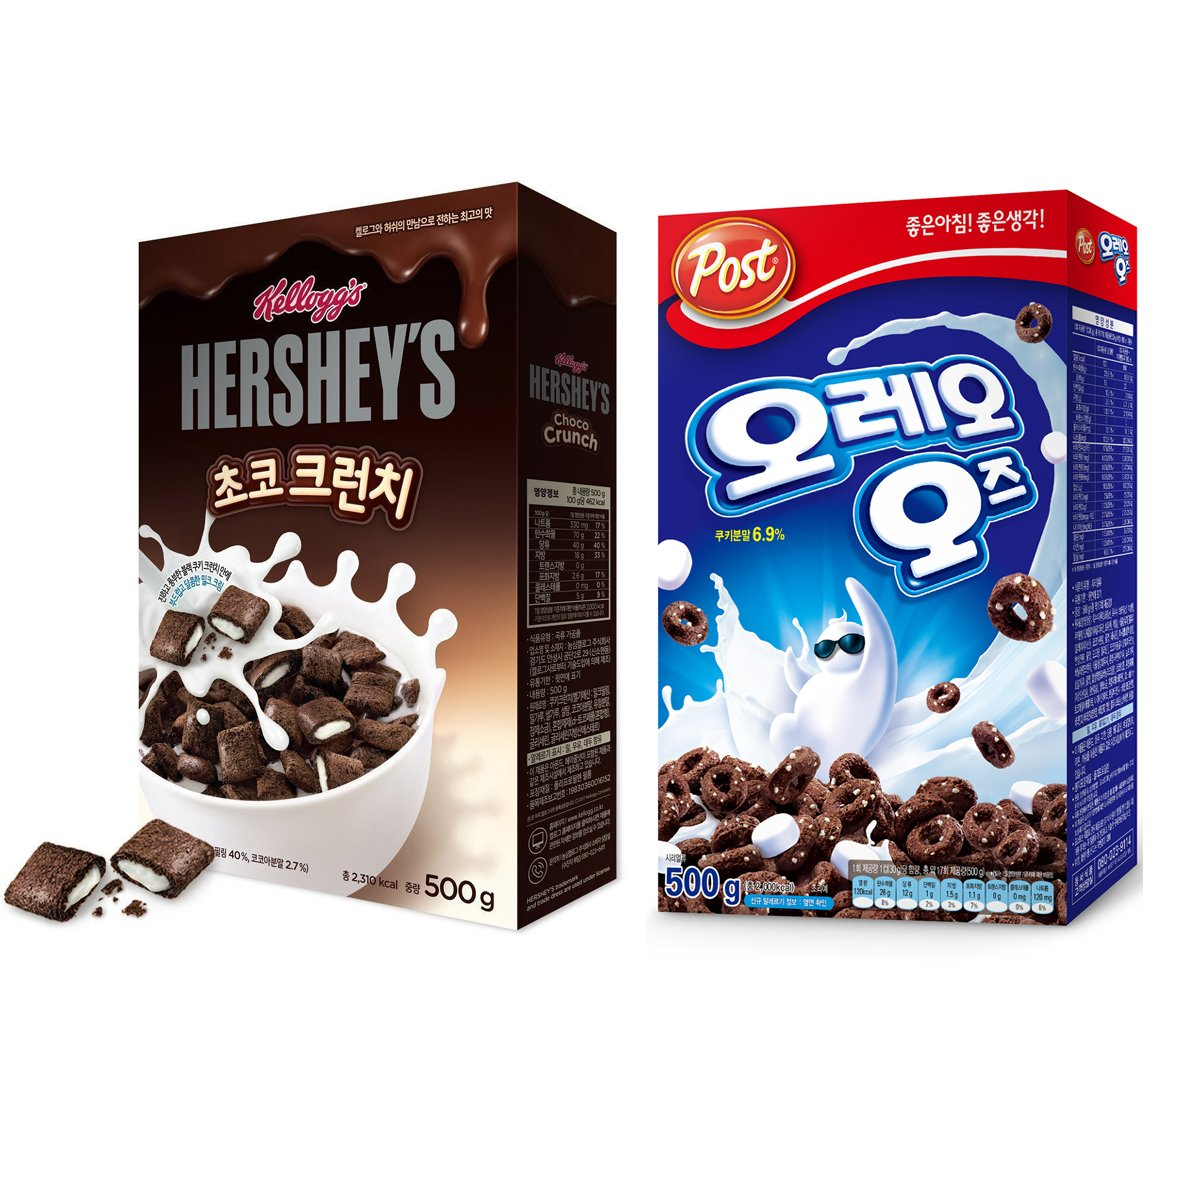 [Korea Limited] Kellogg's Hershey Chocolate Crunchies Cereals 500g(17.6oz) + POST OREO O`s Cereals 500g(17.6oz) / Korean food / Korean cereals (Overseas)